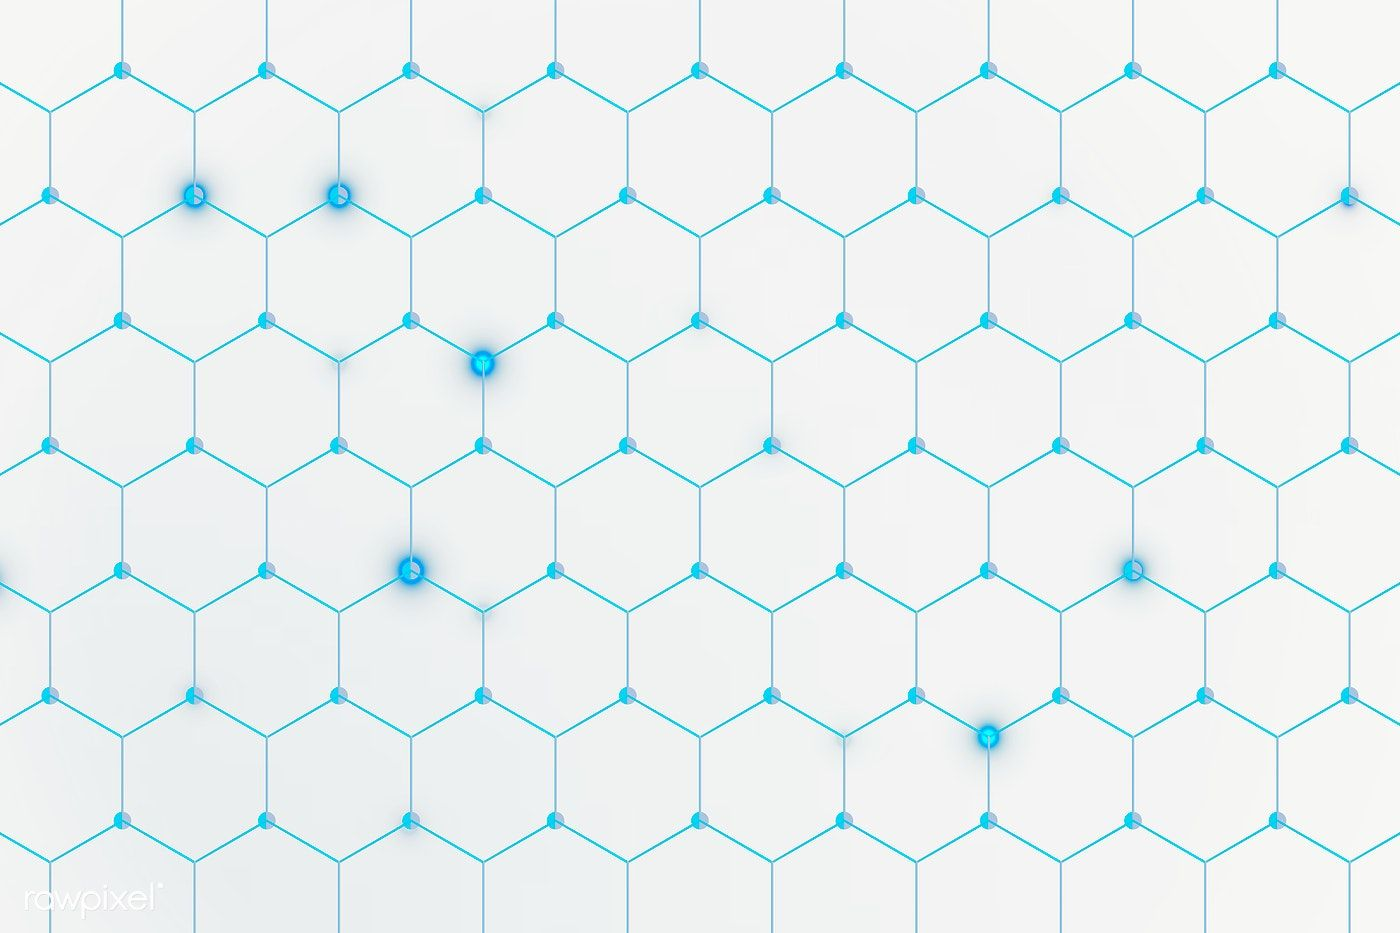 Honeycomb Patterned Blue Background Layer Free Image By Rawpixel Com Katie Honeycomb Pattern Blue Backgrounds Abstract Backgrounds